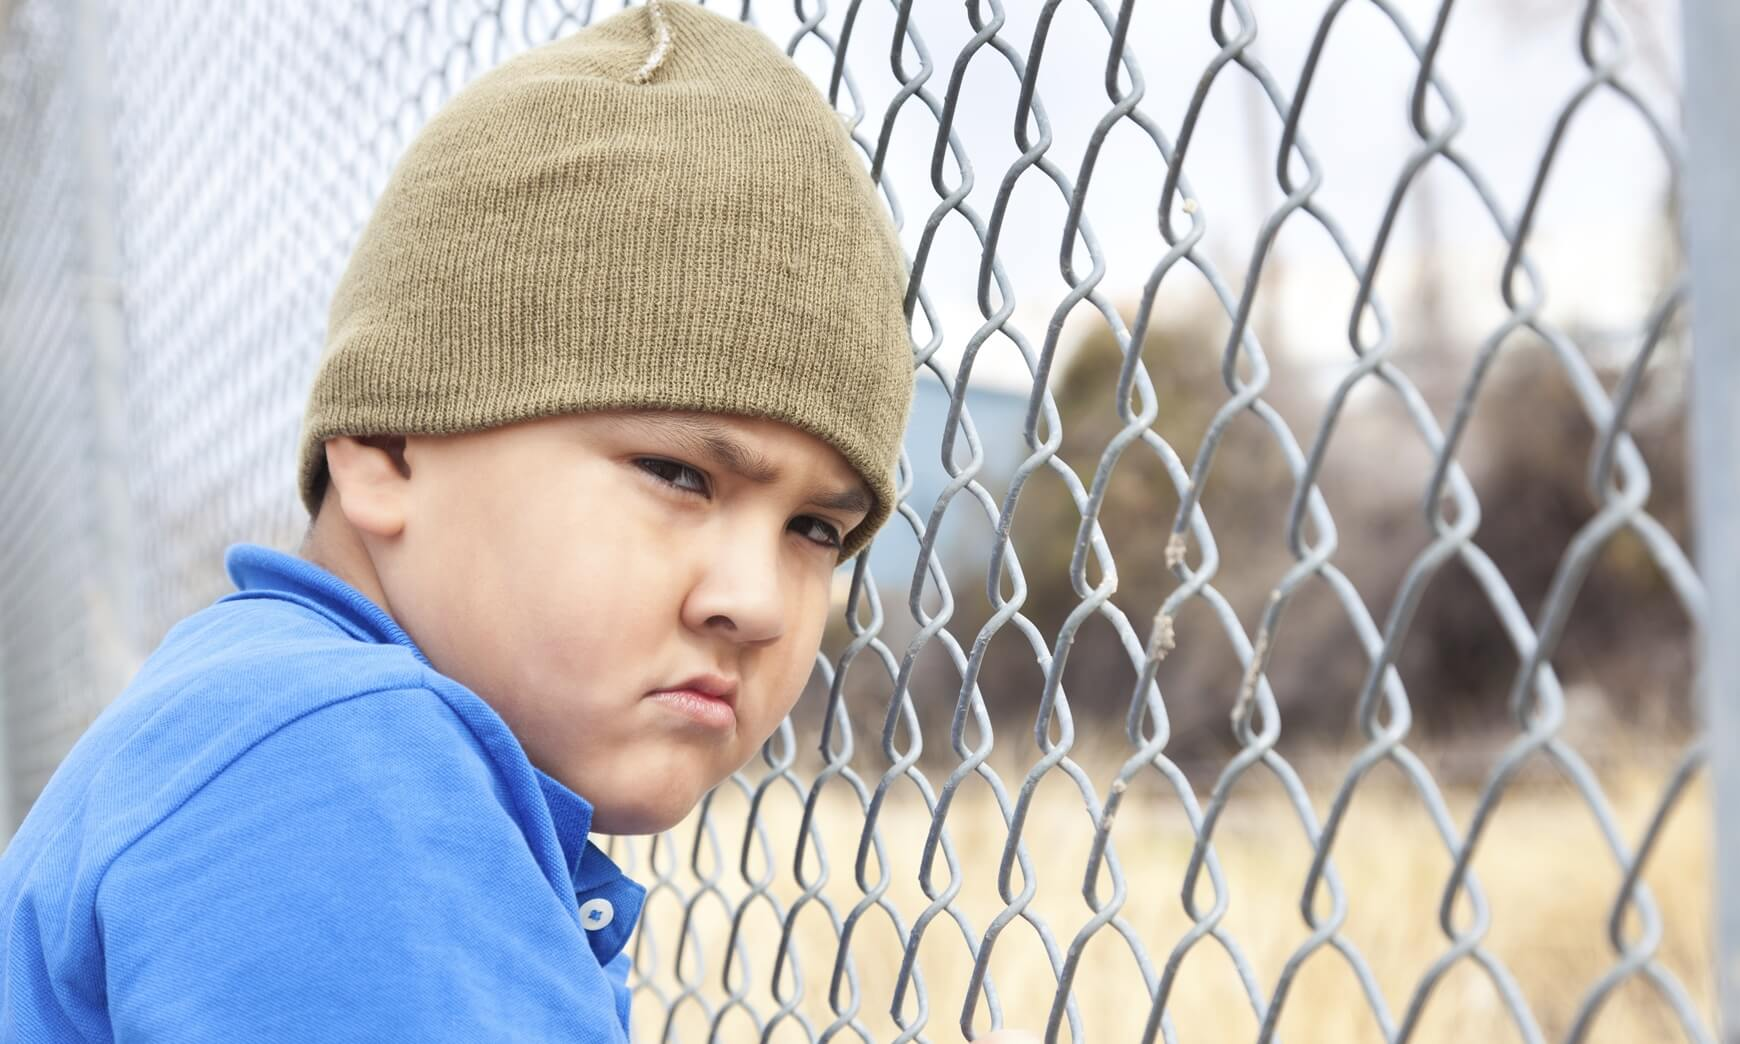 Upset young boy at a fence